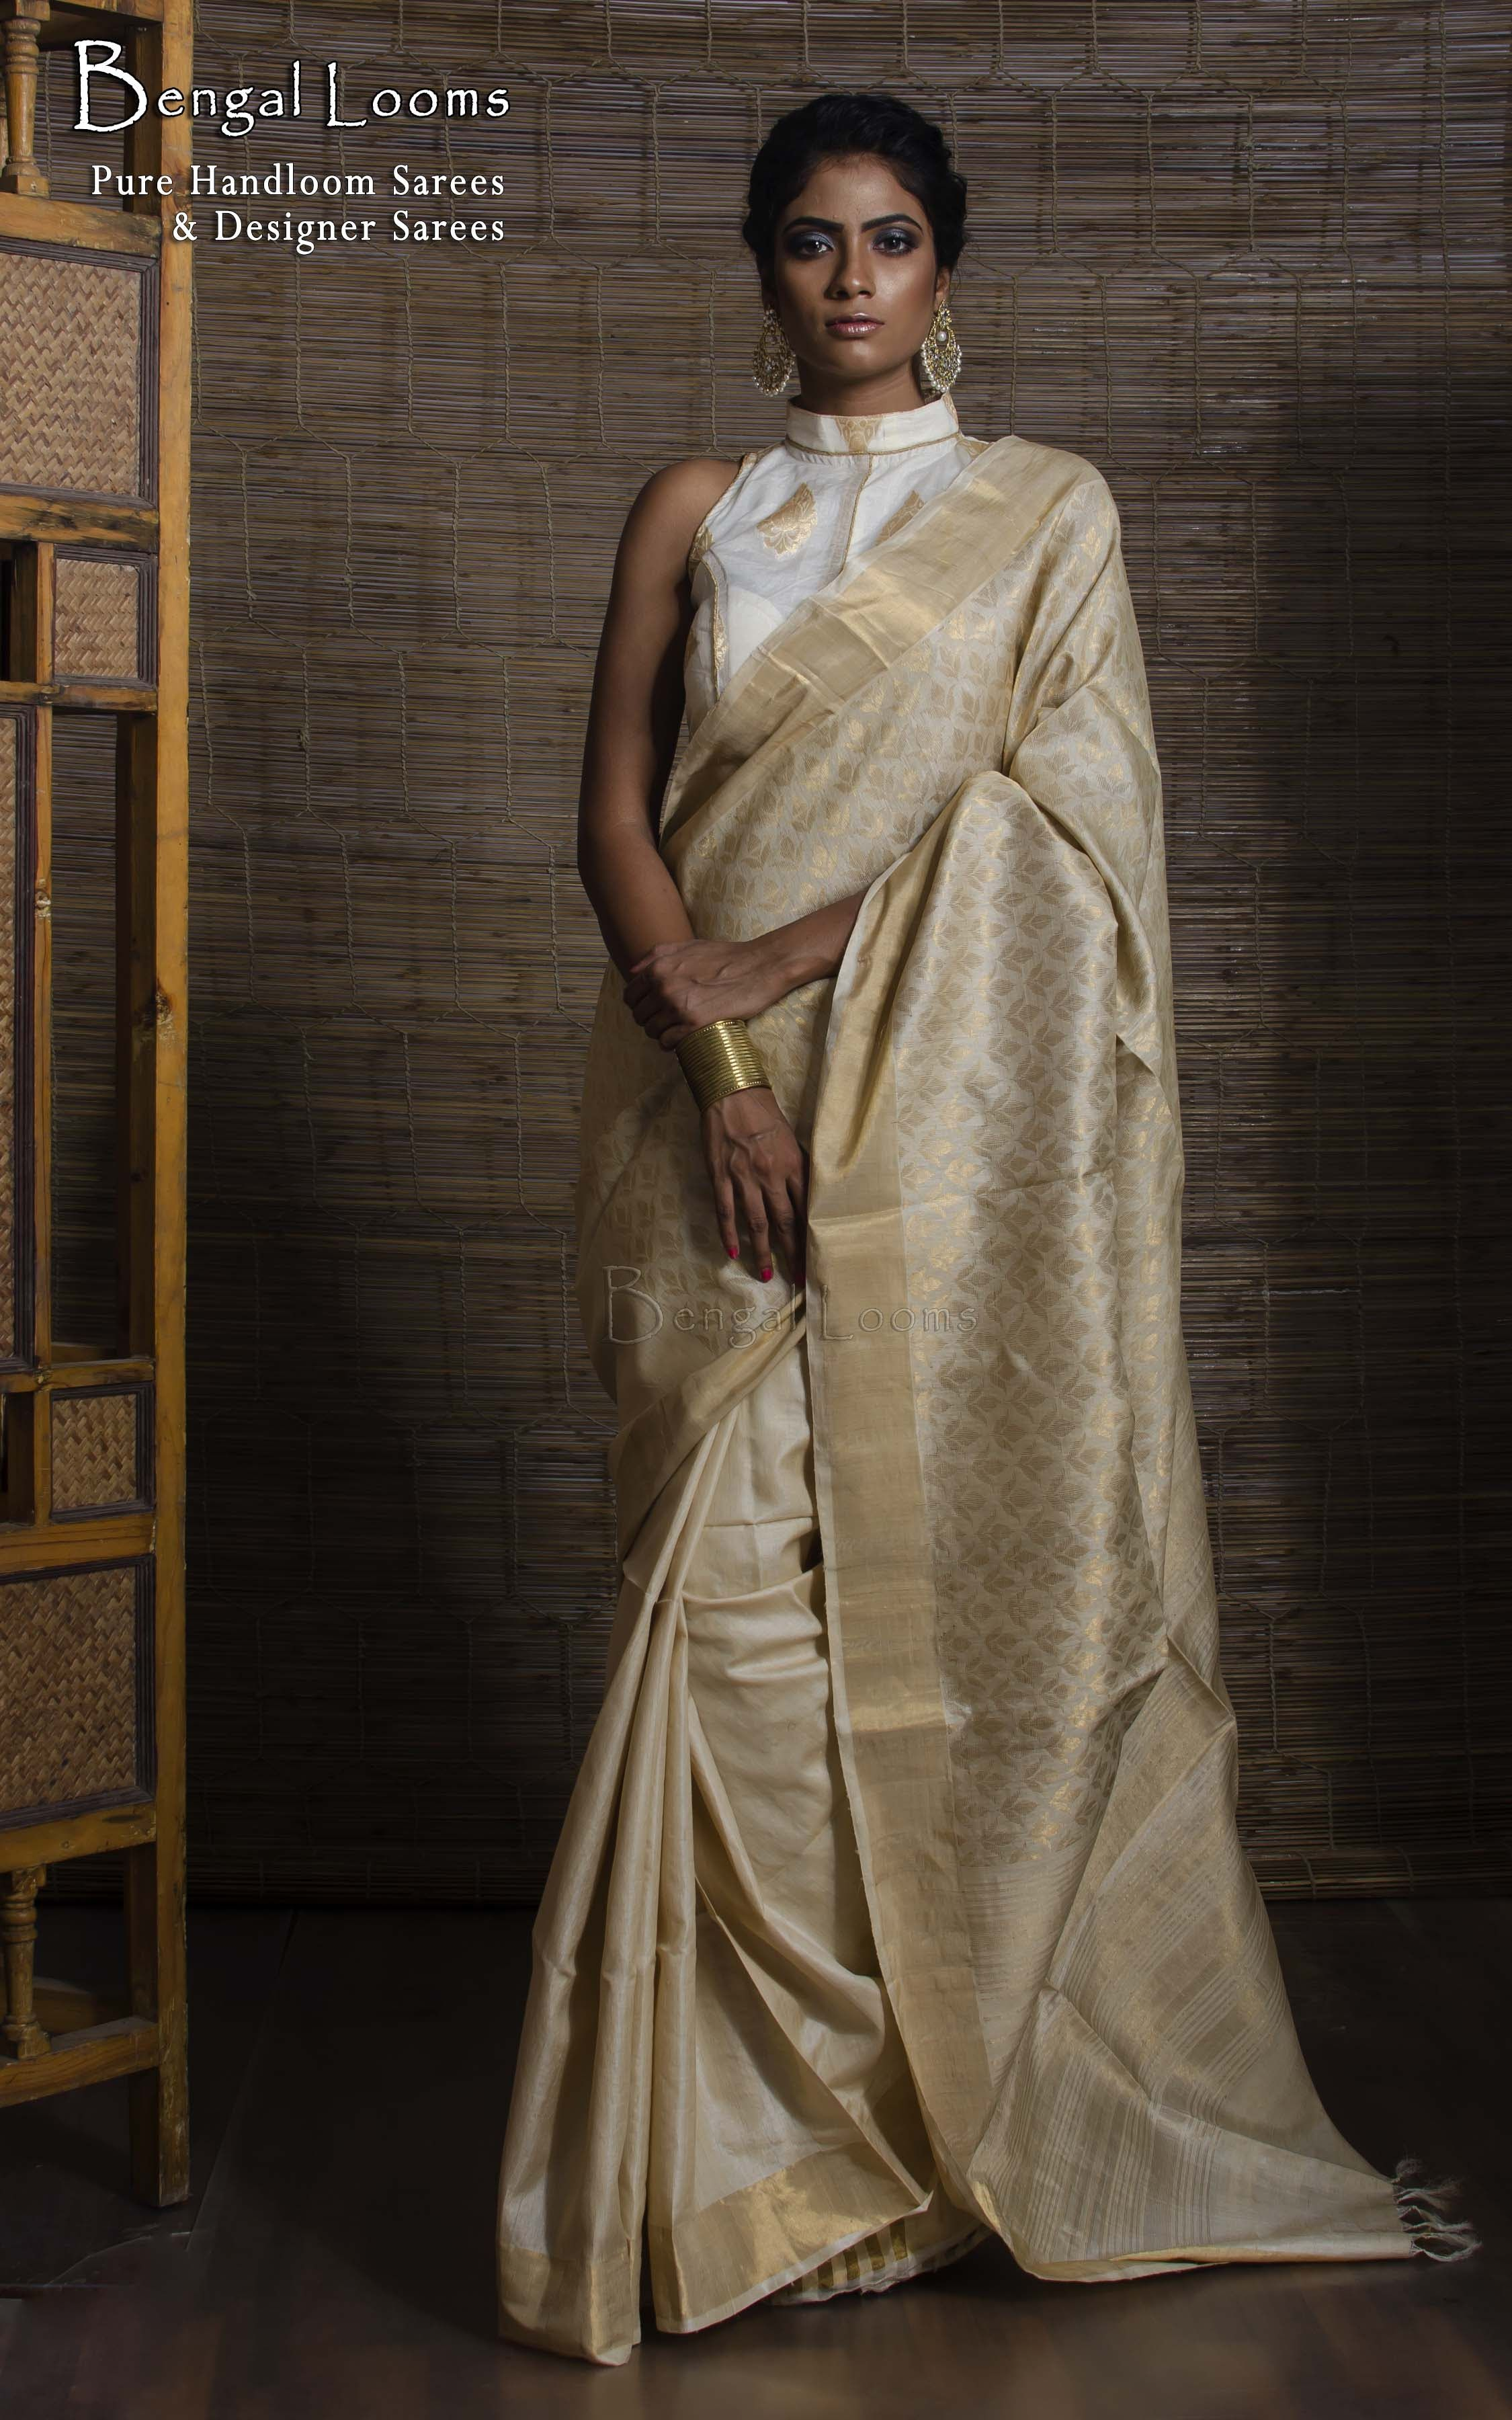 1d01d21995a8f8 Half Brocade Tussar Silk Saree in Beige and Gold